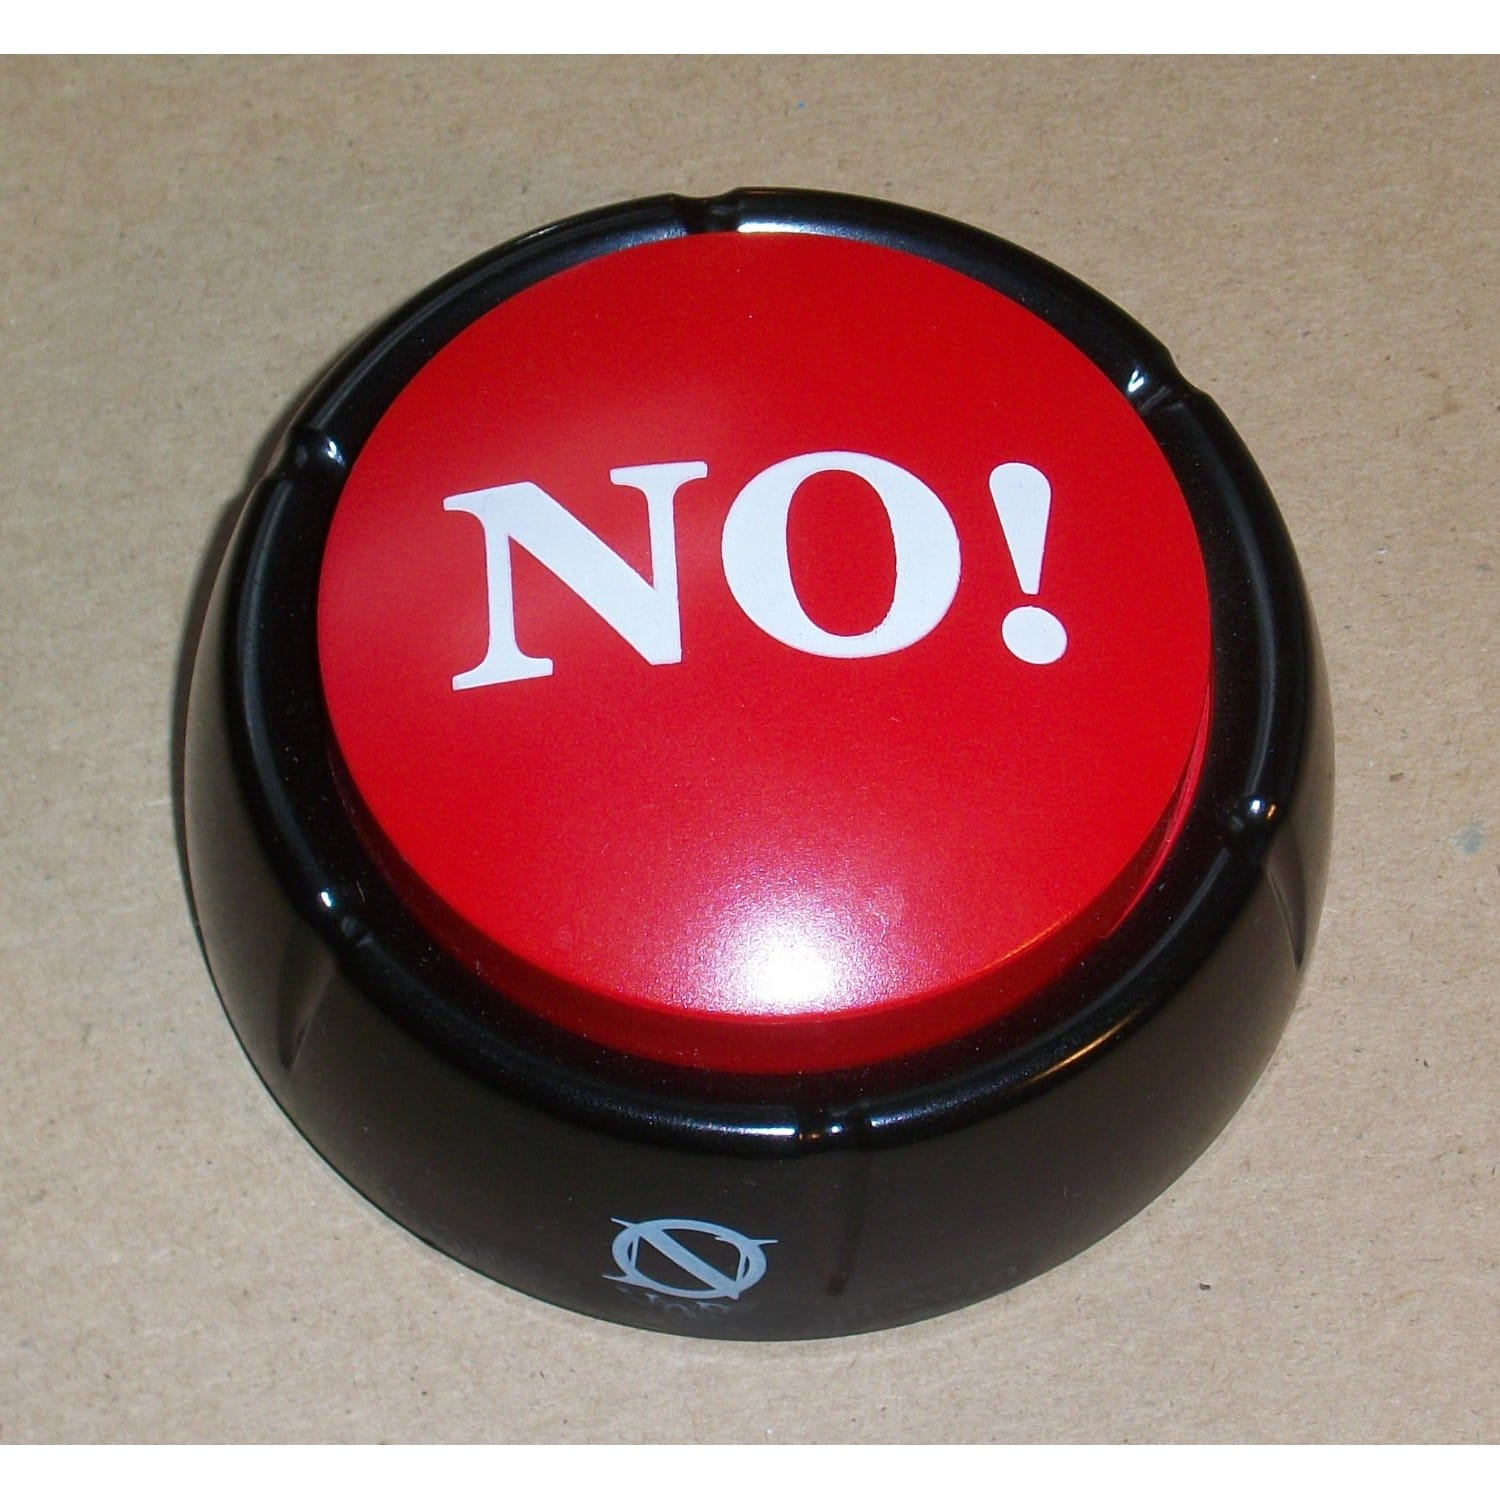 10 Ways to Say No at Work with a No Button - CubicleBliss.com